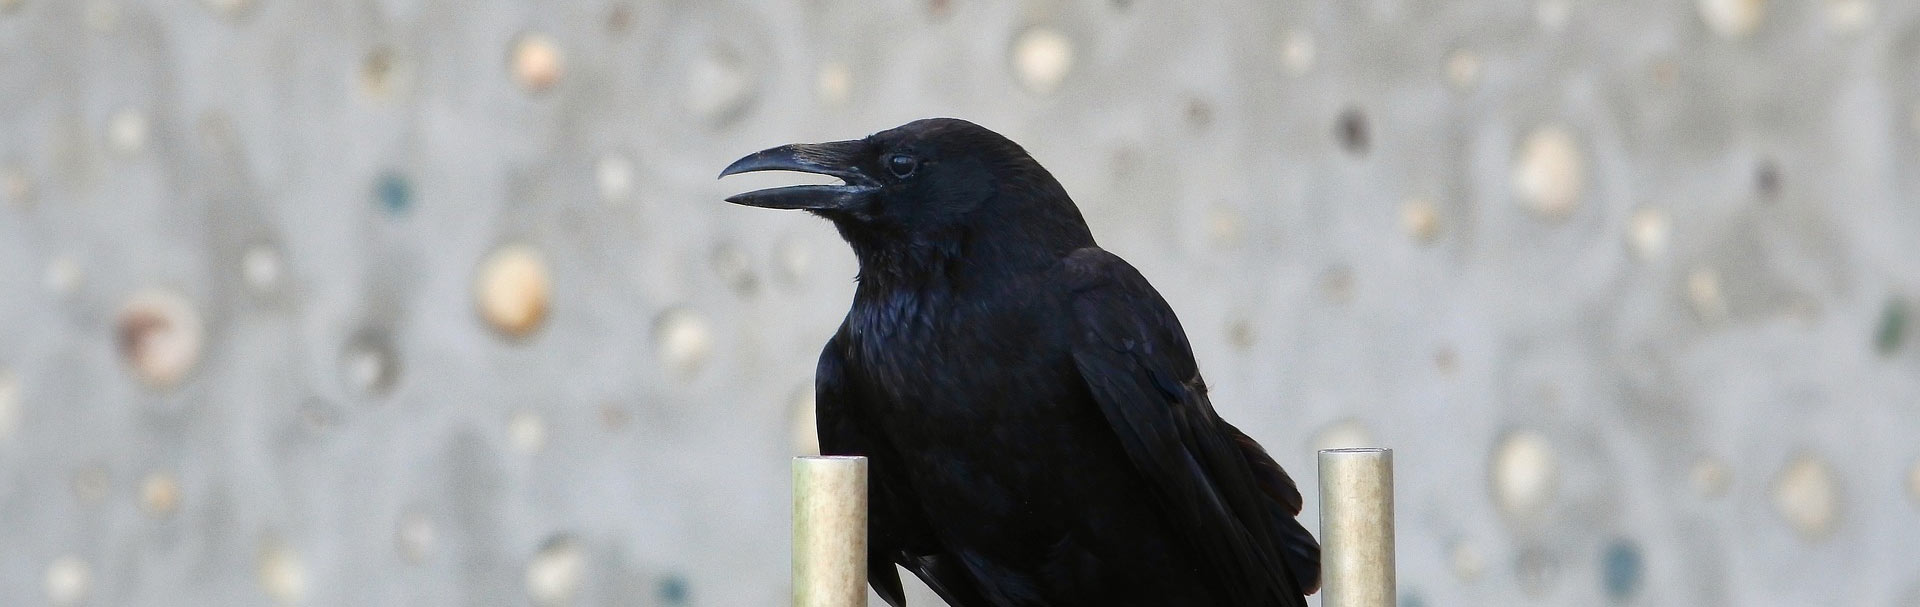 Image of a raven. Image from Pixabay.